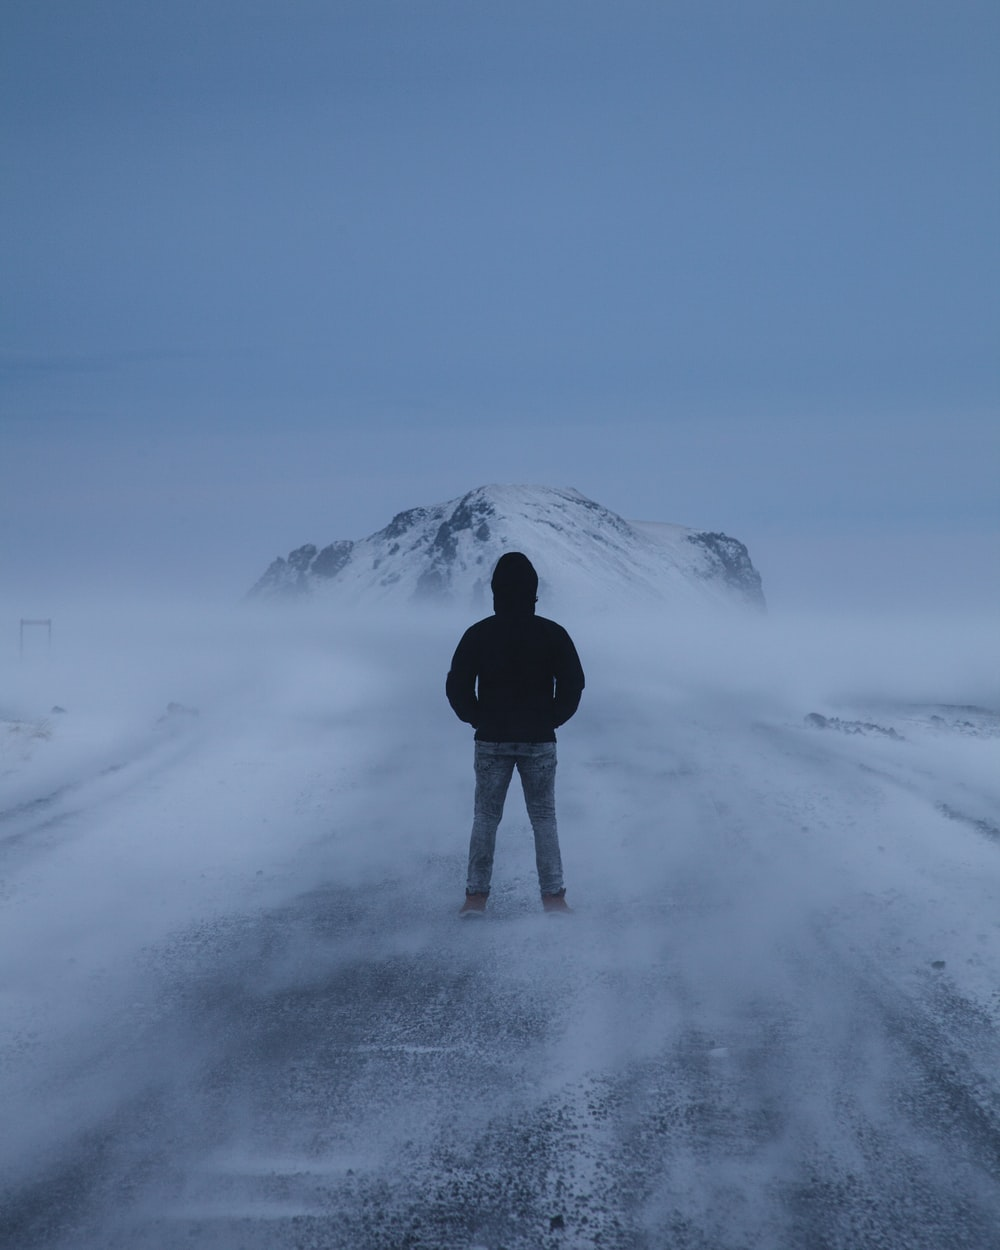 person in black jacket standing on snow covered ground during daytime